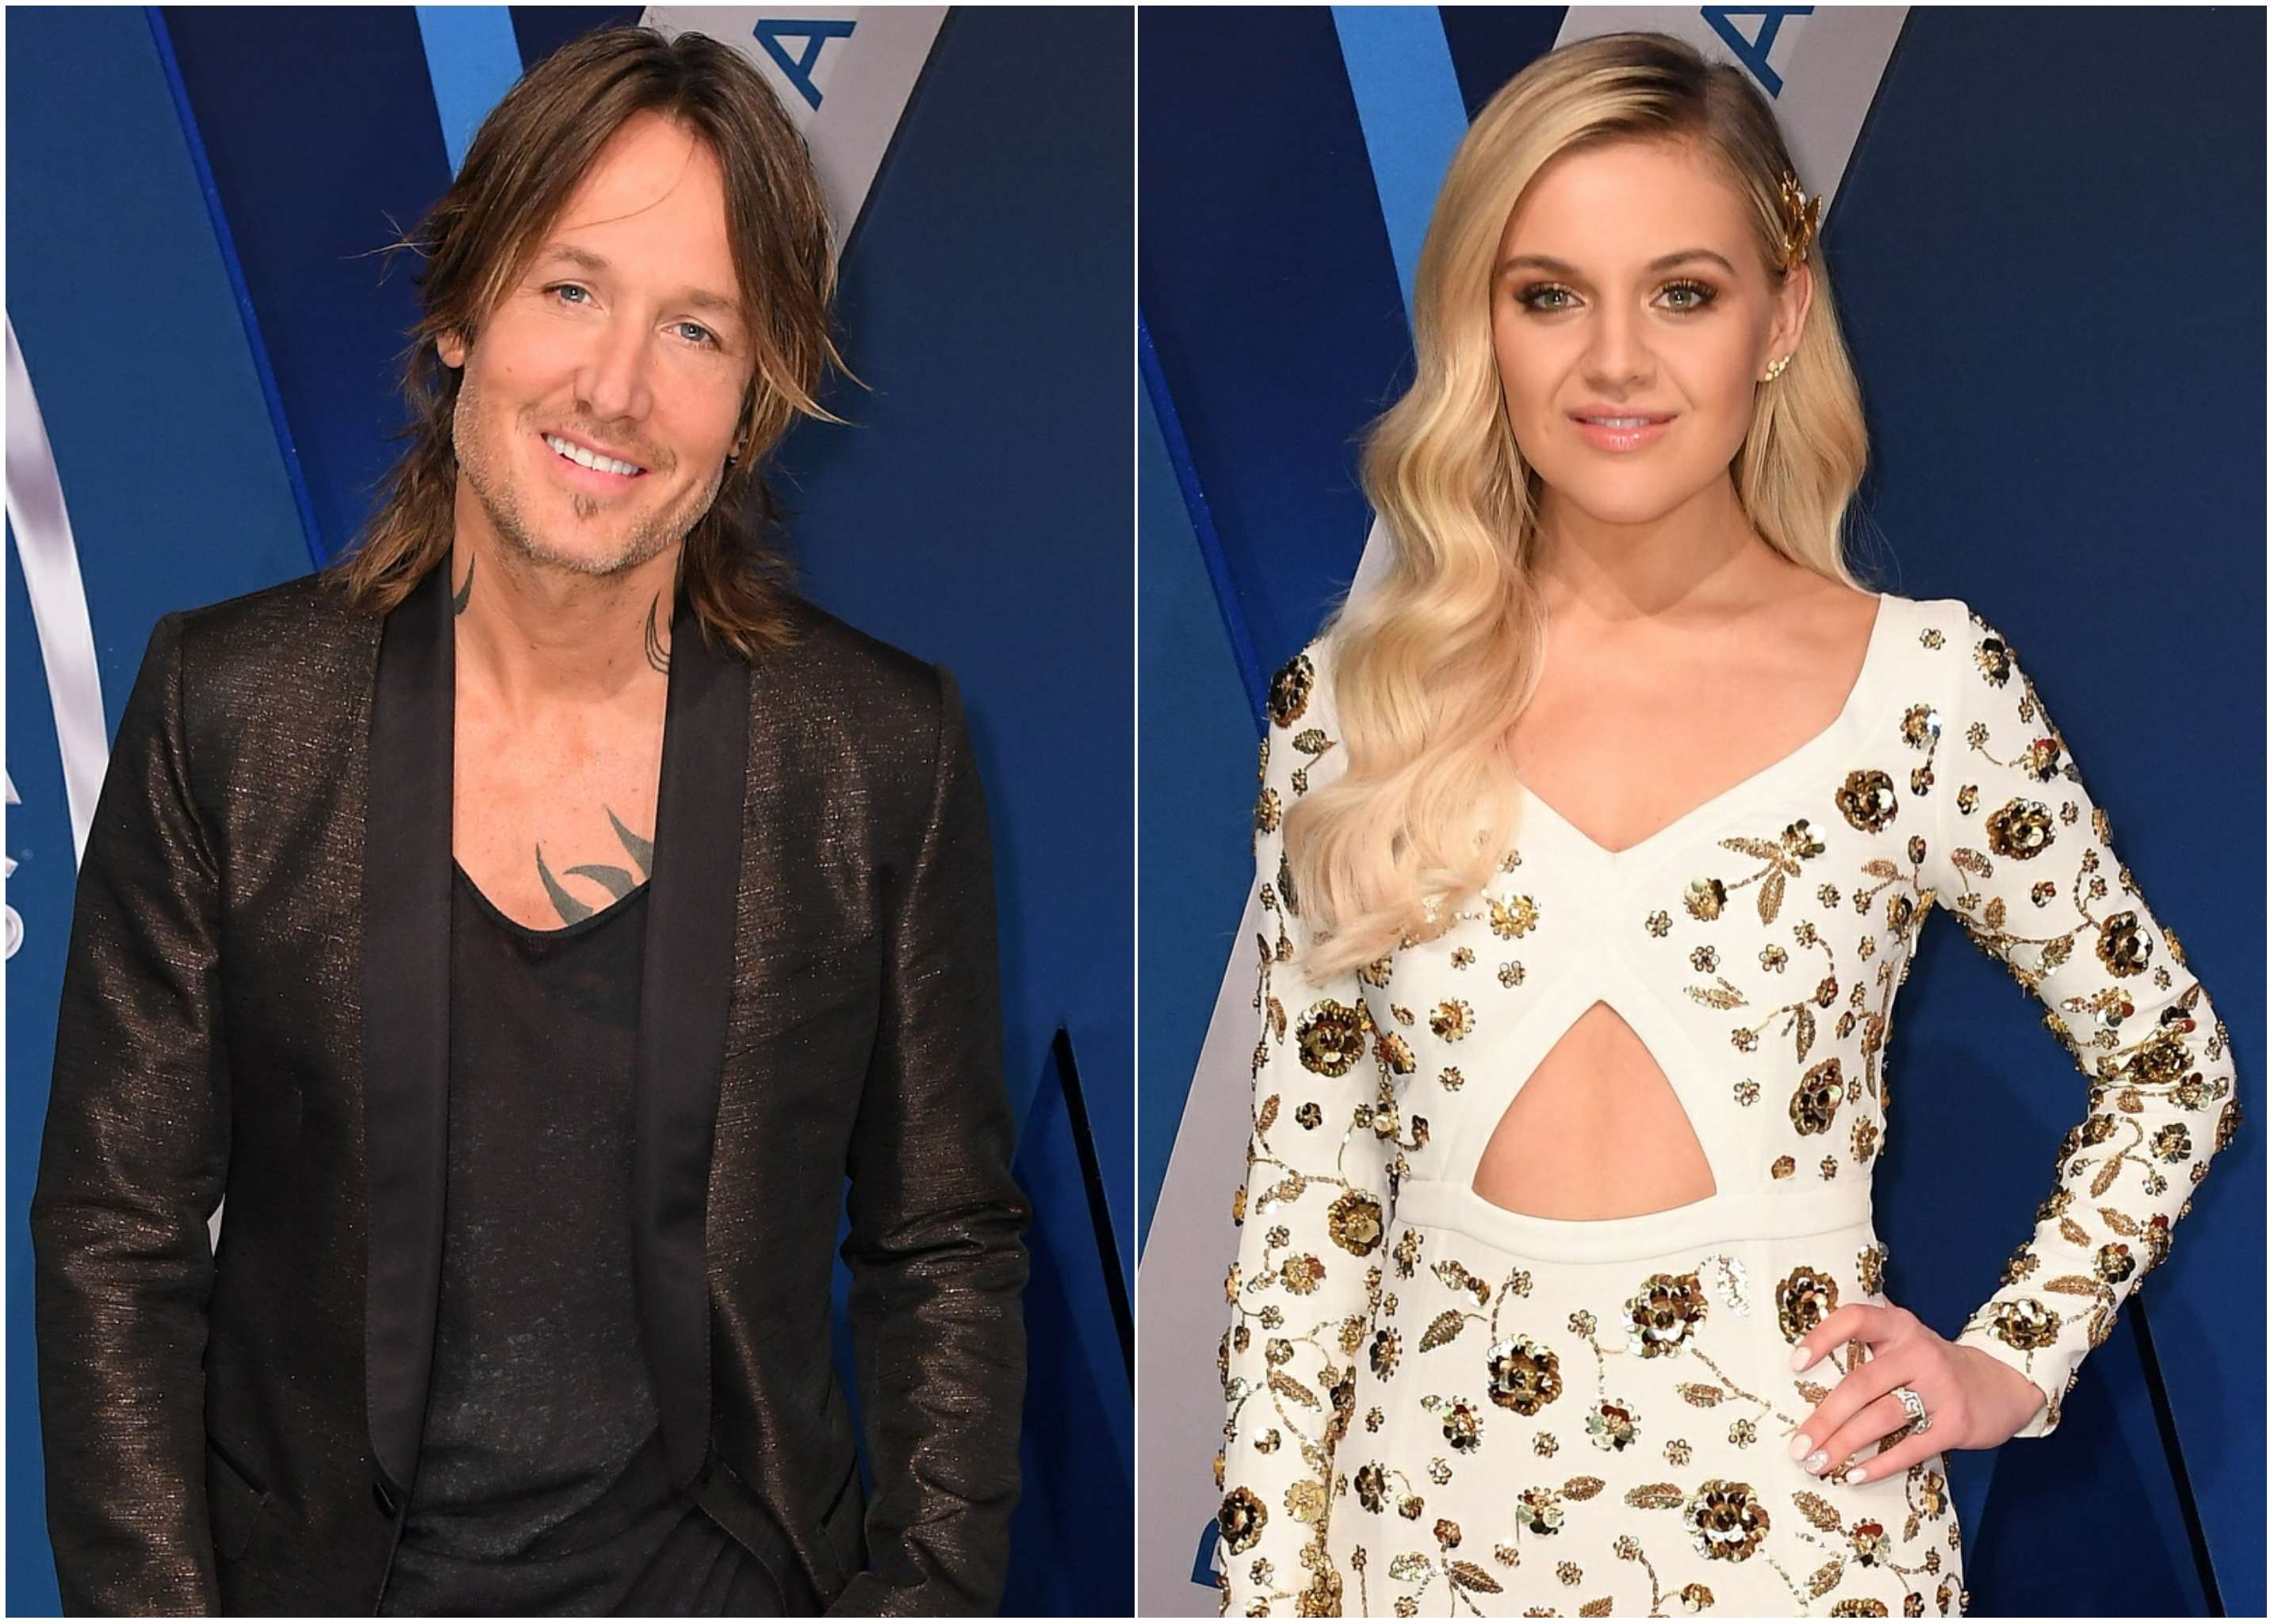 Keith Urban Pinpoints Why He Chose Kelsea Ballerini For The Graffiti